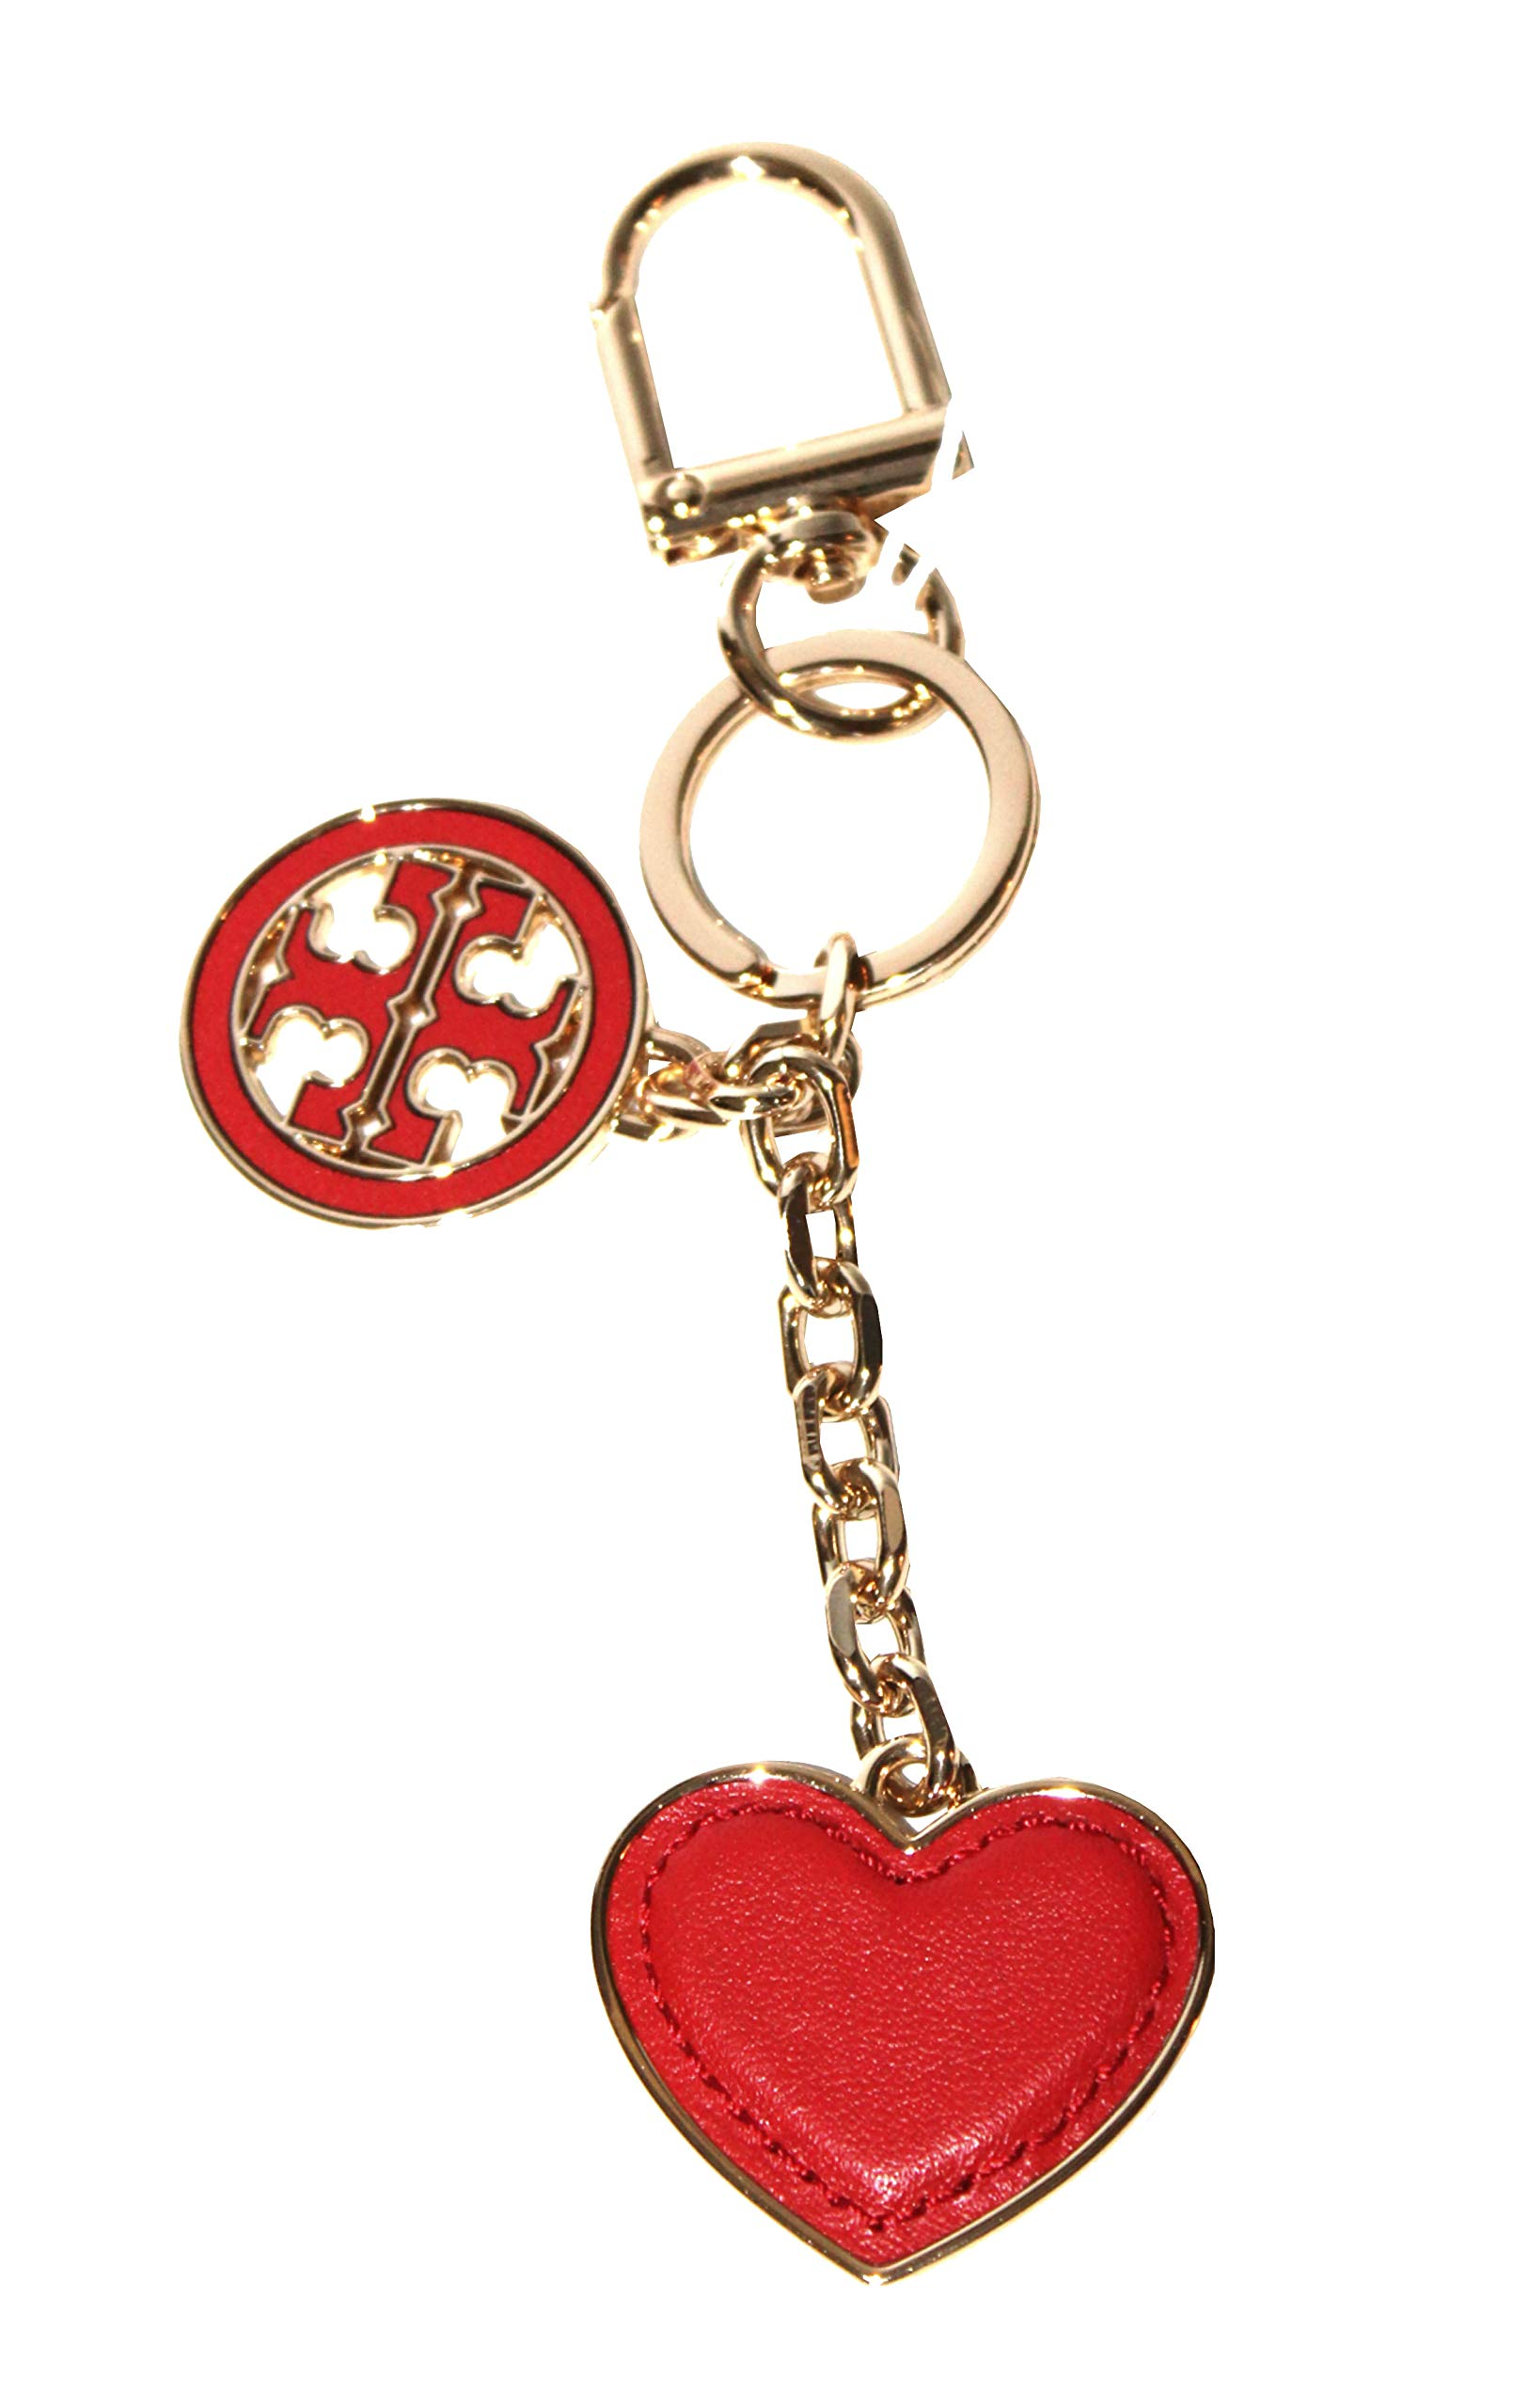 Tory Burch Logo Heart Key Fob Keychain